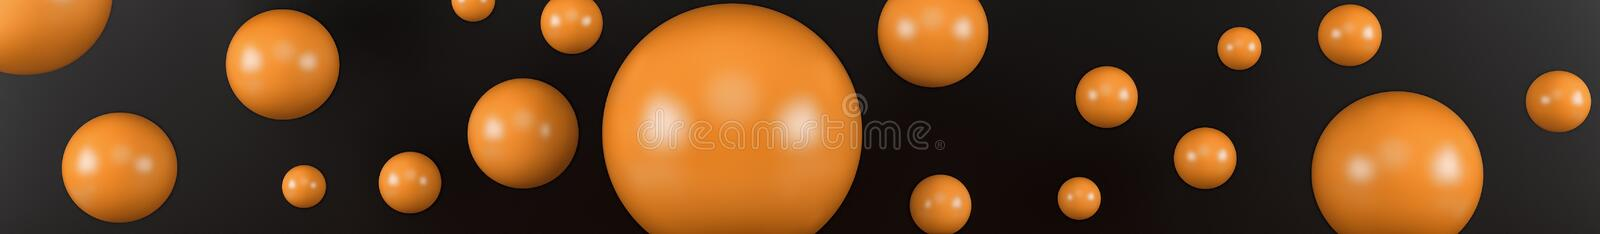 Closeup top view group of assorted industrial ceramic orange balls on black background. 3d render royalty free illustration